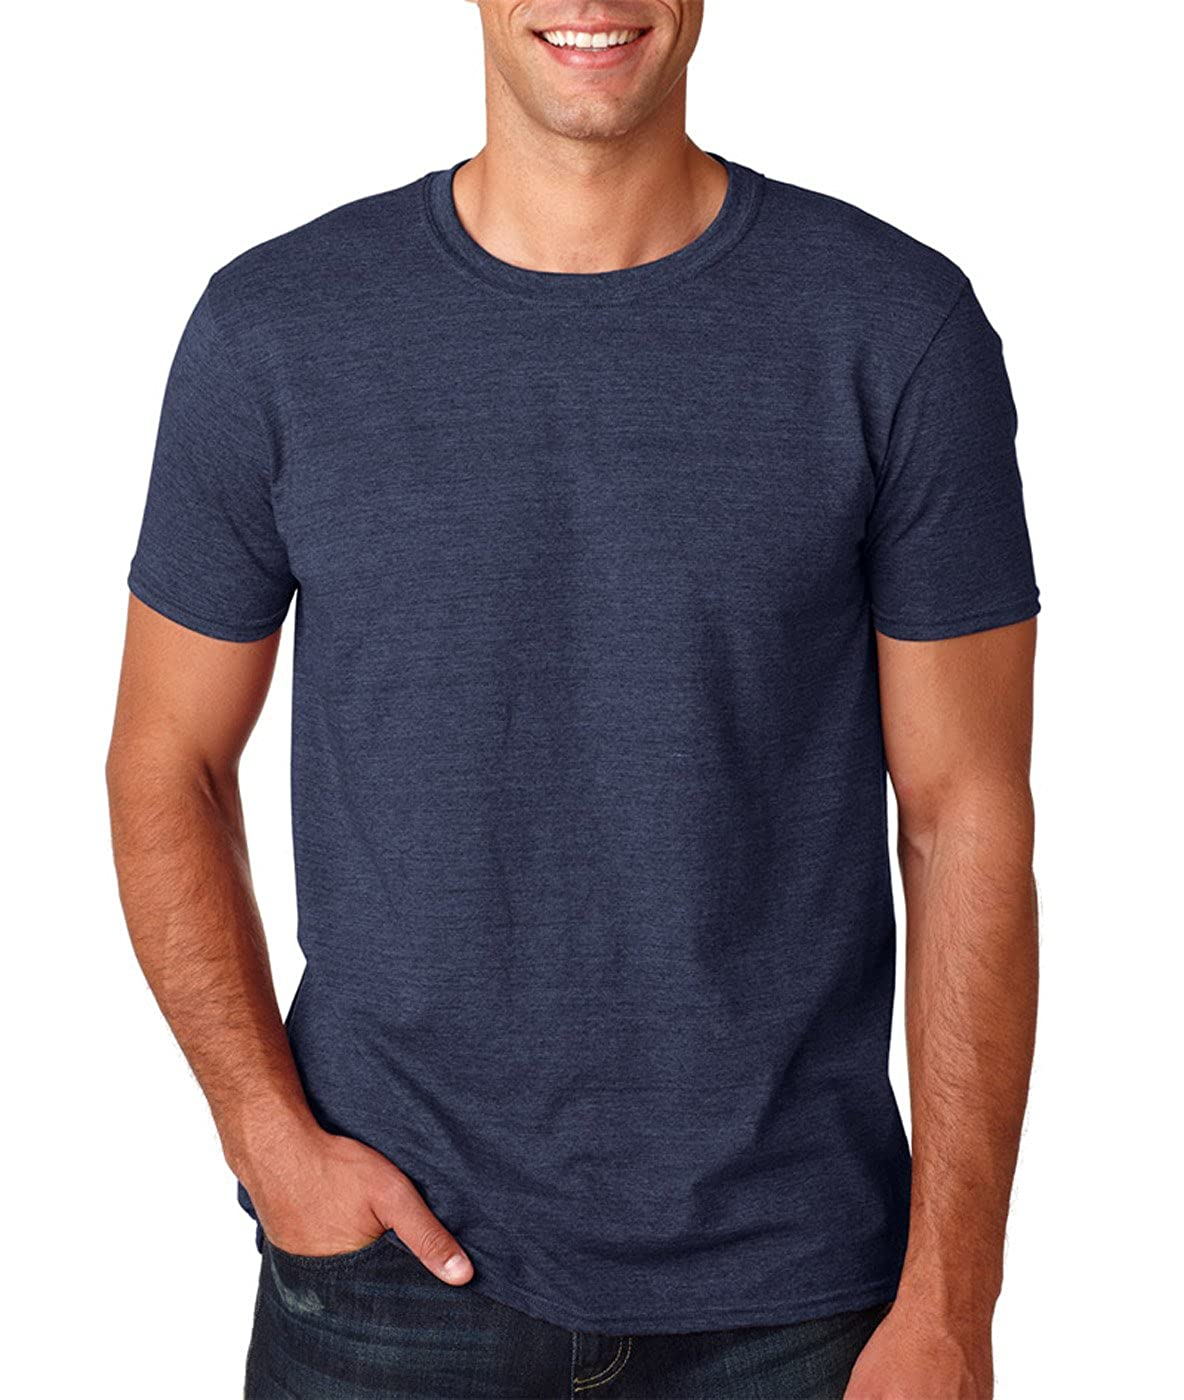 Ringspun T Shirt >> Gildan Men S Softstyle Ringspun T Shirt 3x Large Heather Navy